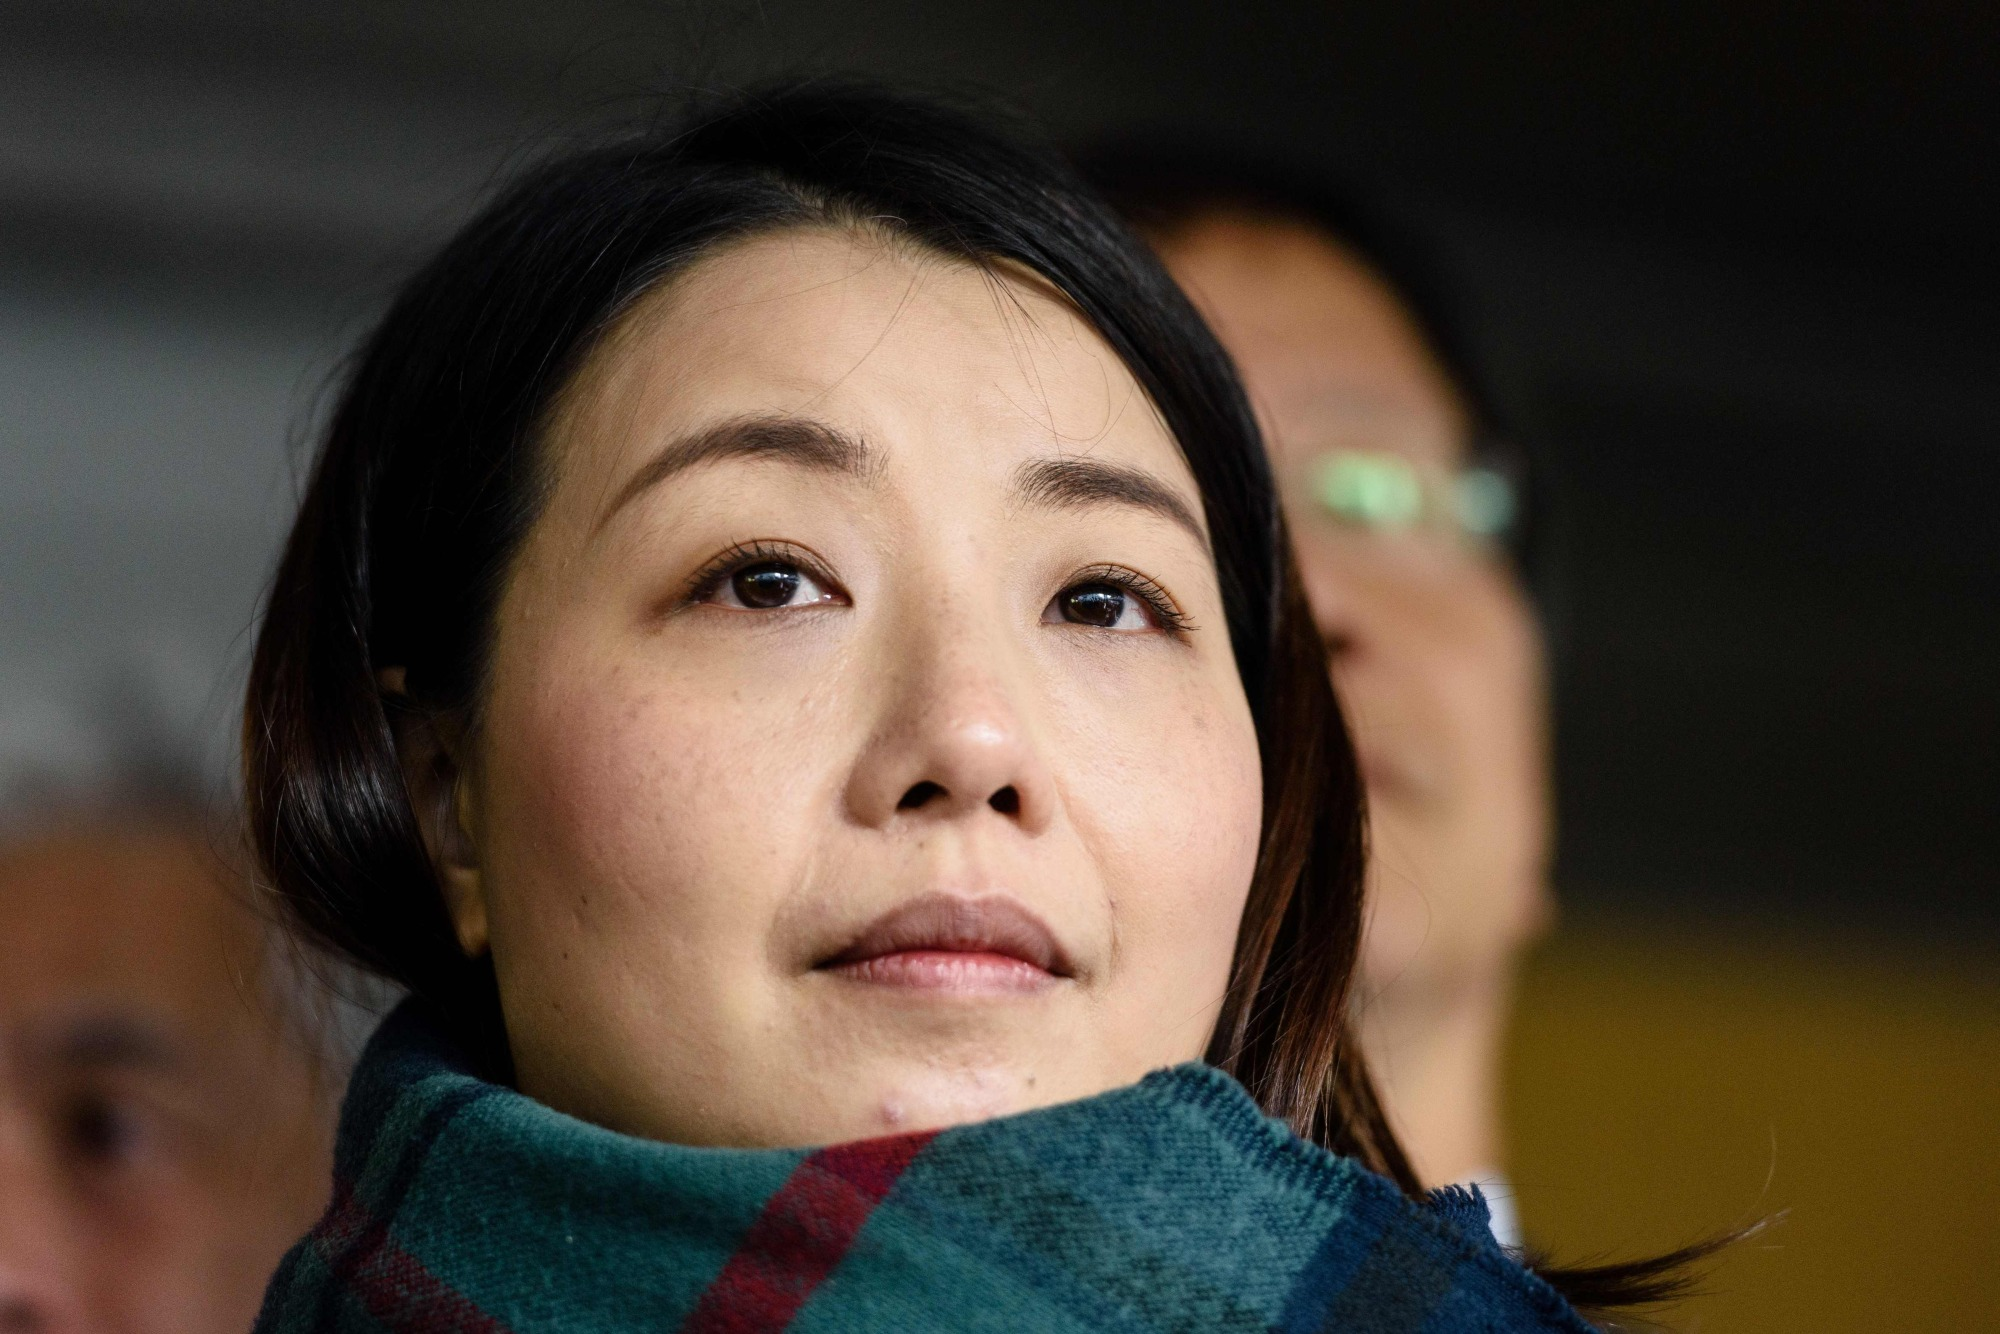 Elected pro-democracy lawmaker Lau Siu-lai stands outside the High Court on March 1, 2017, before facing a judicial review into whether she and three other lawmakers should be disqualified from their Legislative Council seats in Hong Kong. | AFP-JIJI